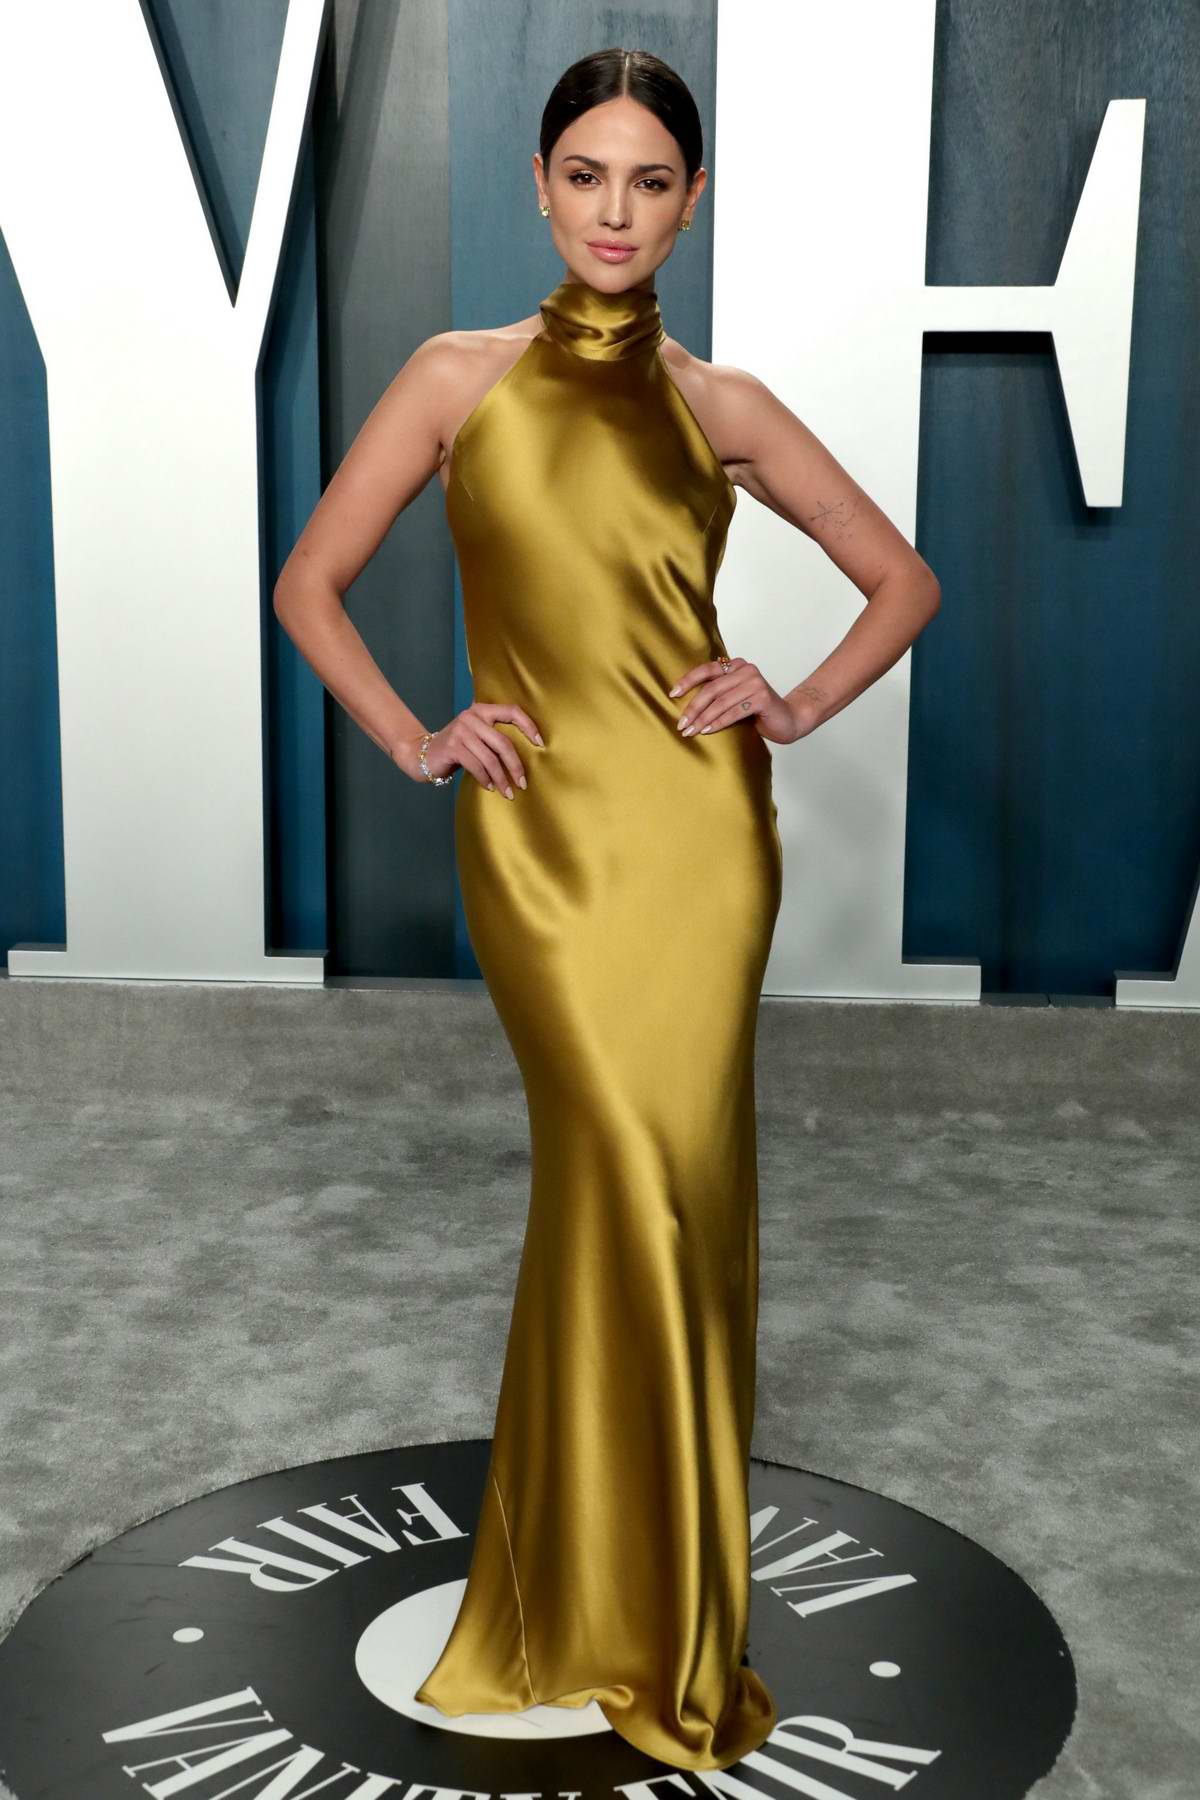 Eiza Gonzalez attends the 2020 Vanity Fair Oscar Party at Wallis Annenberg Center for the Performing Arts in Los Angeles